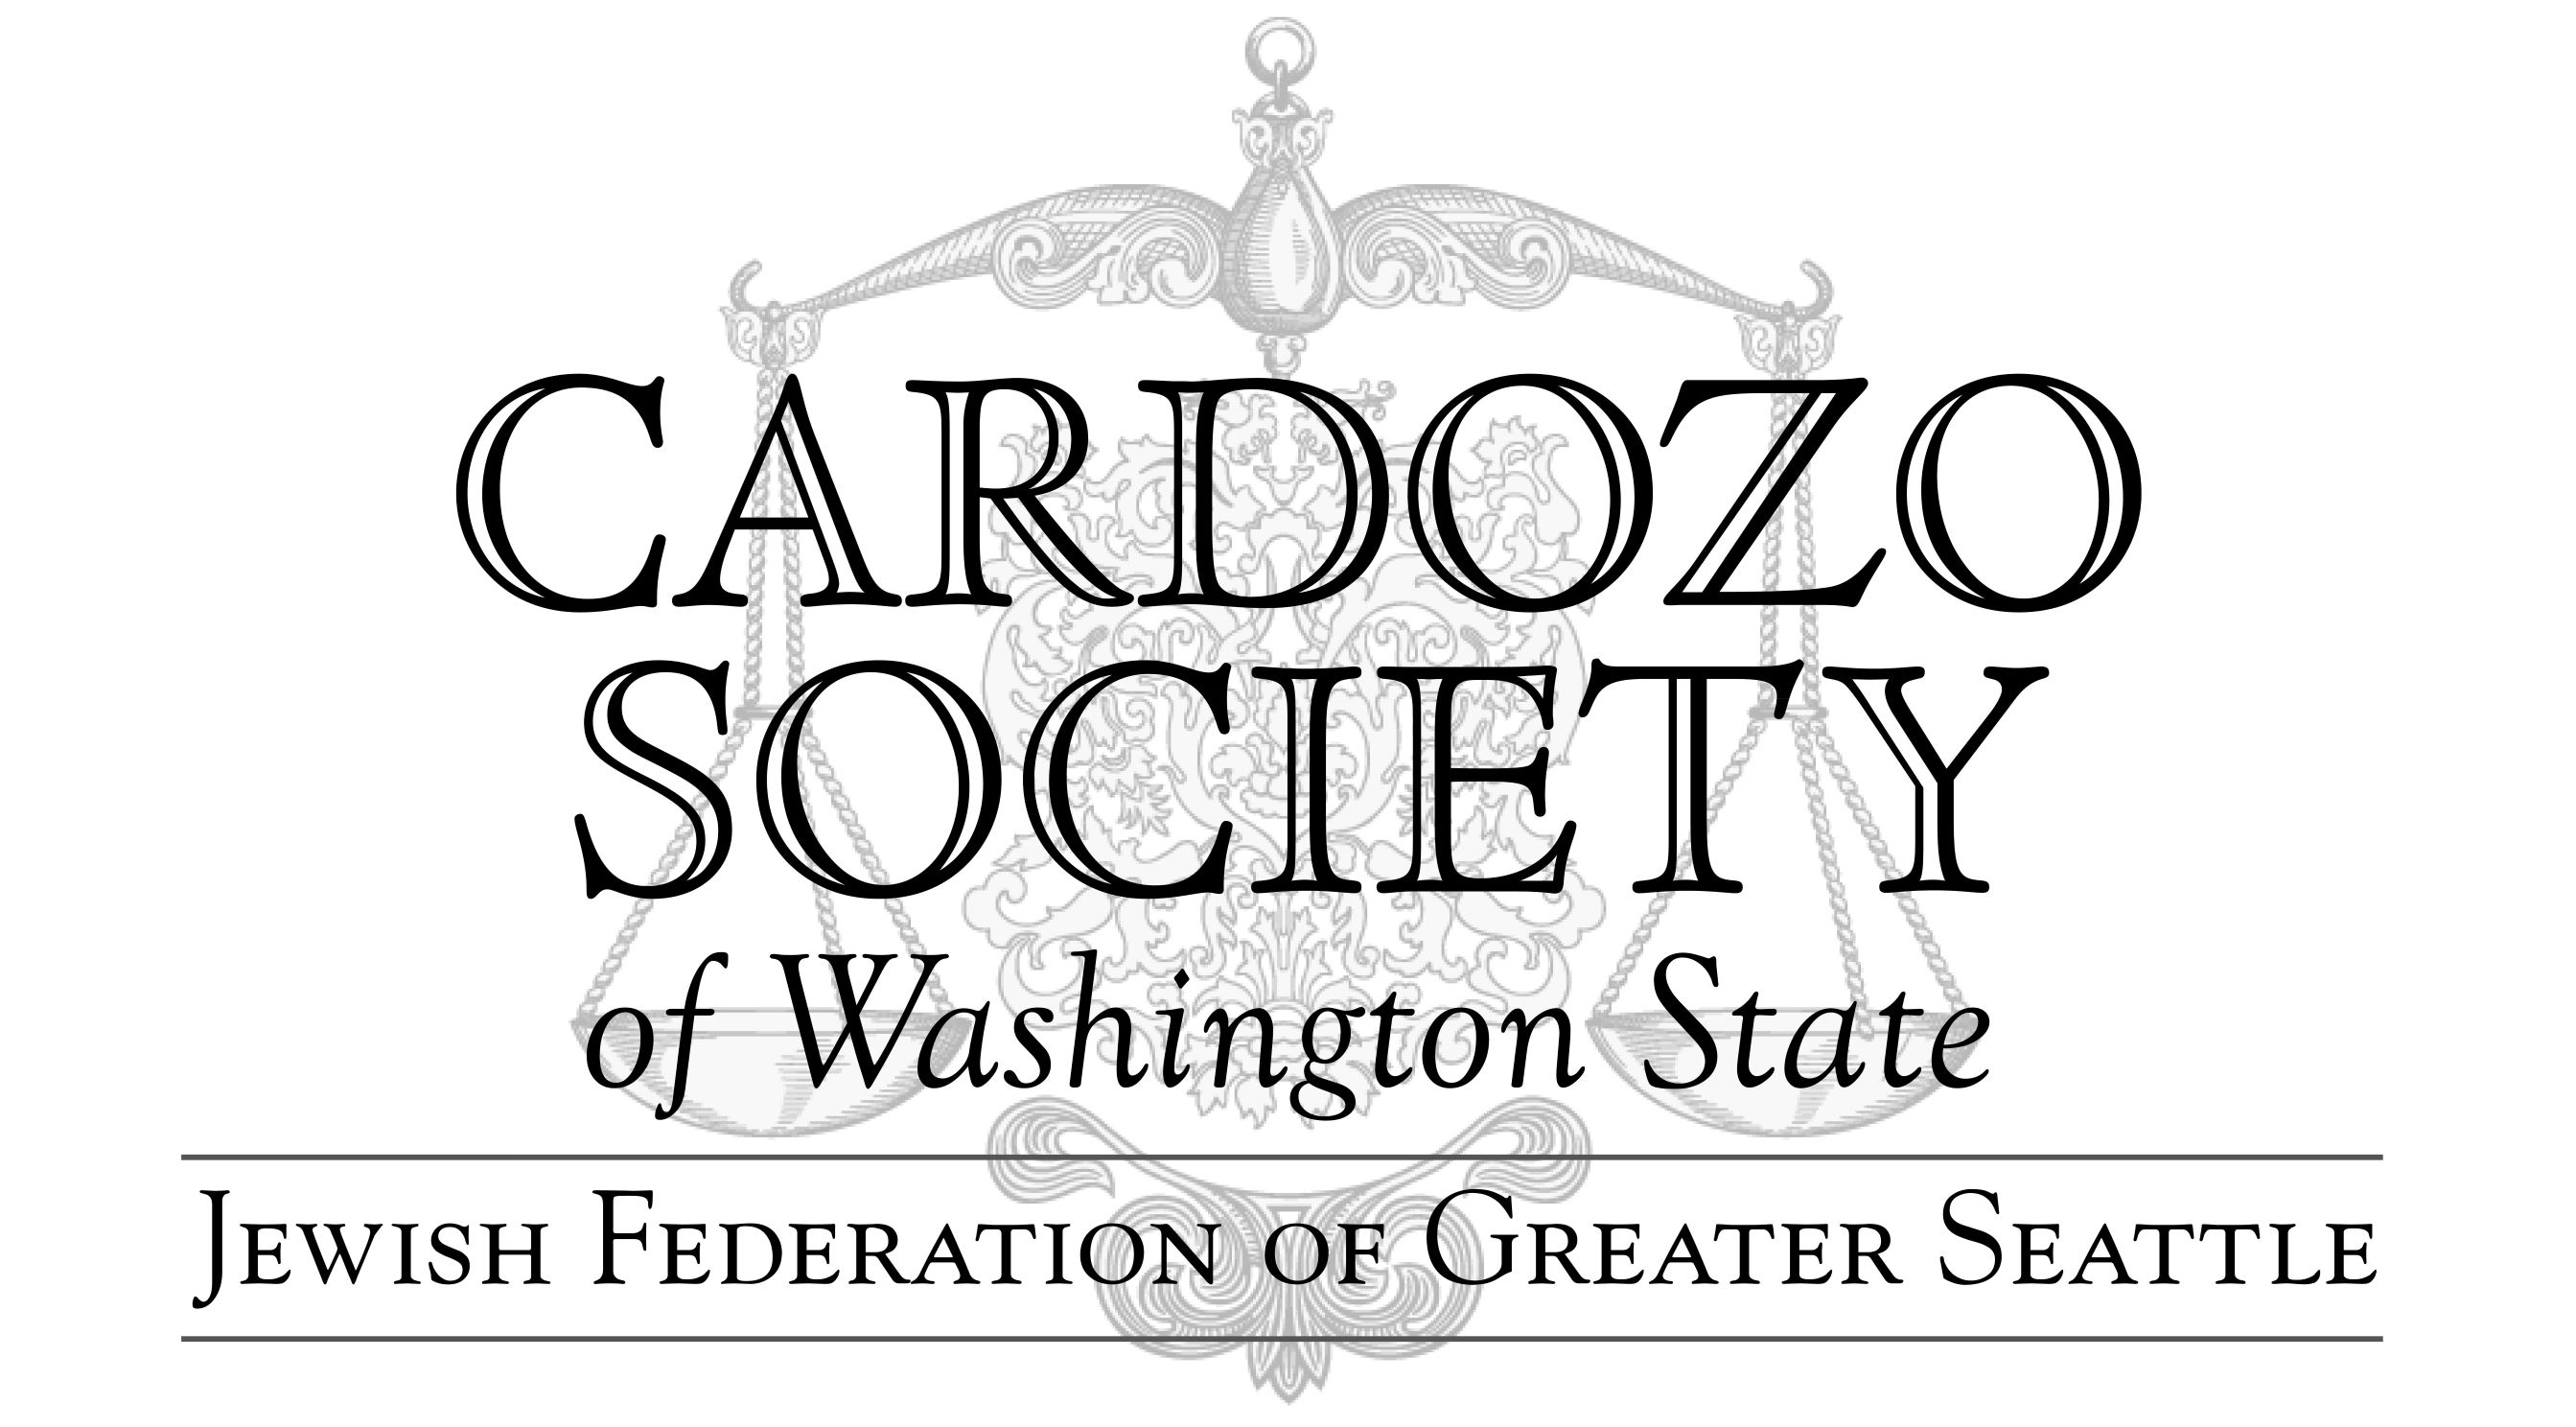 Cardozo Society of Washington State